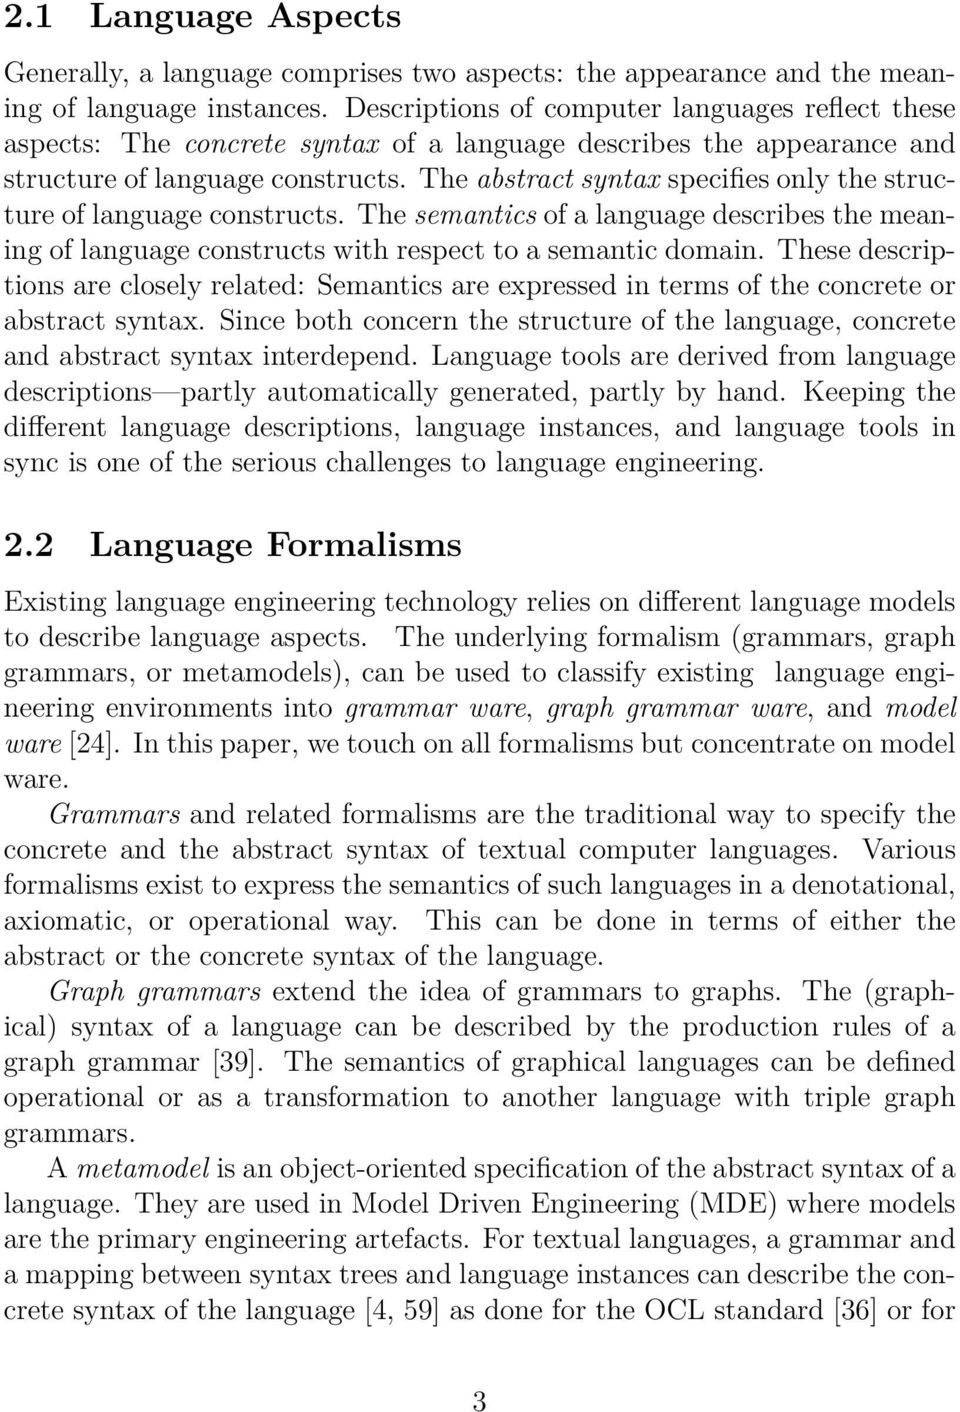 The abstract syntax specifies only the structure of language constructs. The semantics of a language describes the meaning of language constructs with respect to a semantic domain.